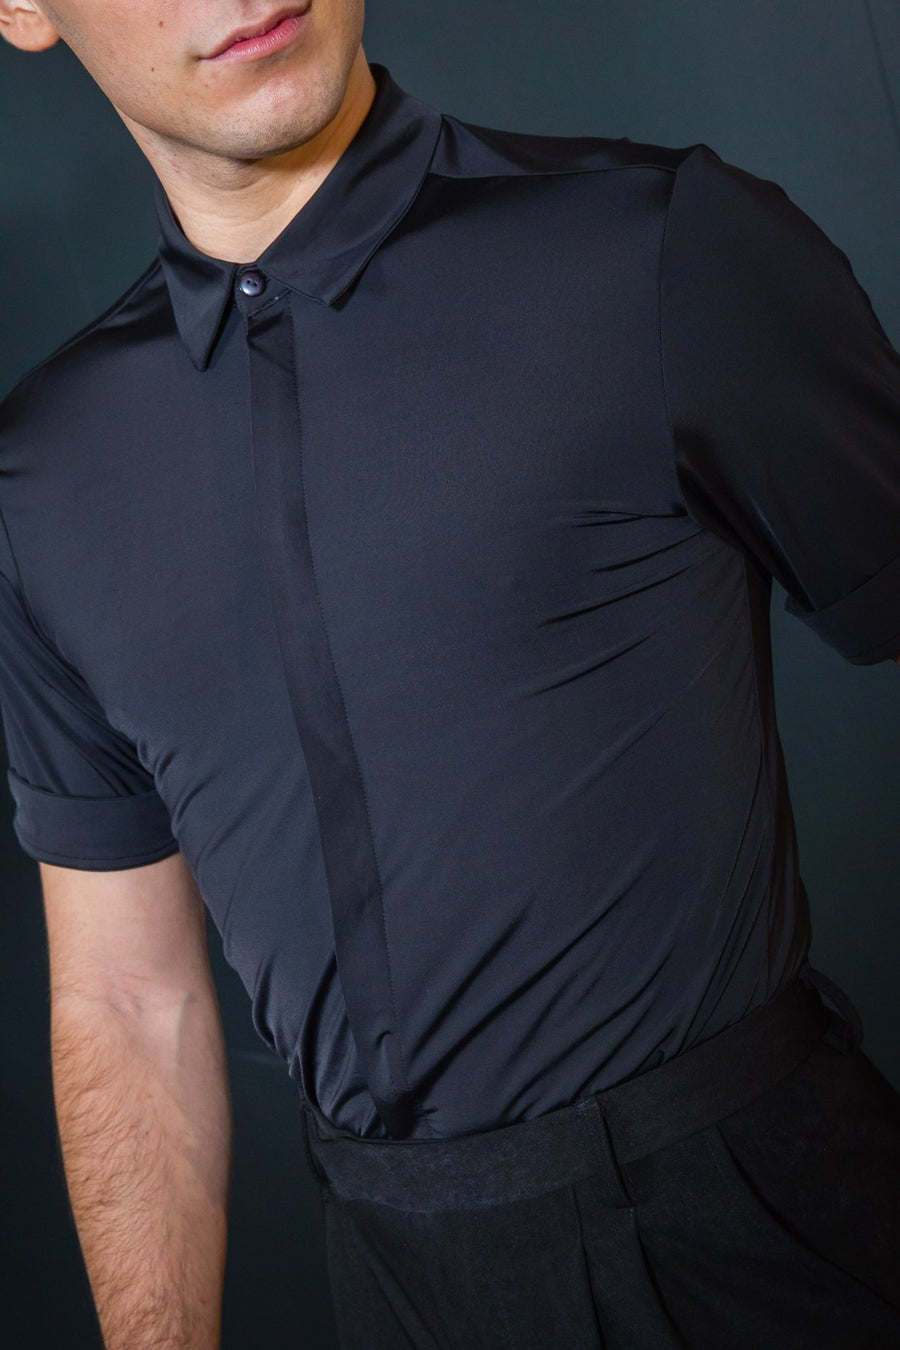 Image of Men's Stretch Short Sleeve Shirt E9436 Dancewear latin ballroom